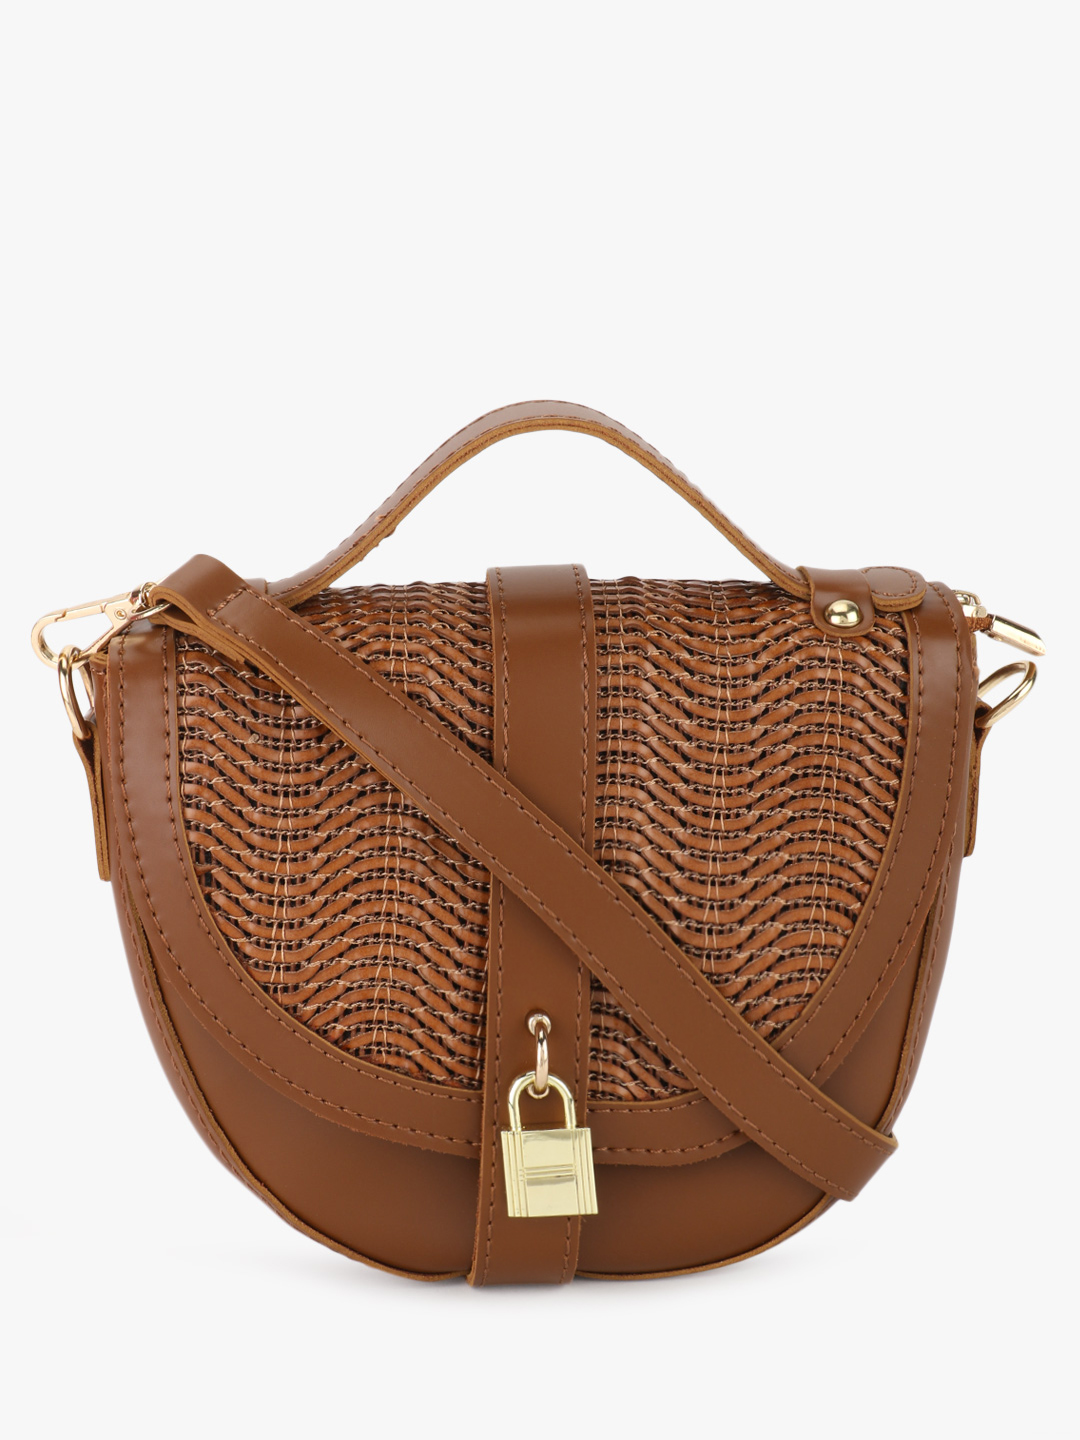 Origami Lily Tan Textured Sling Bag 1